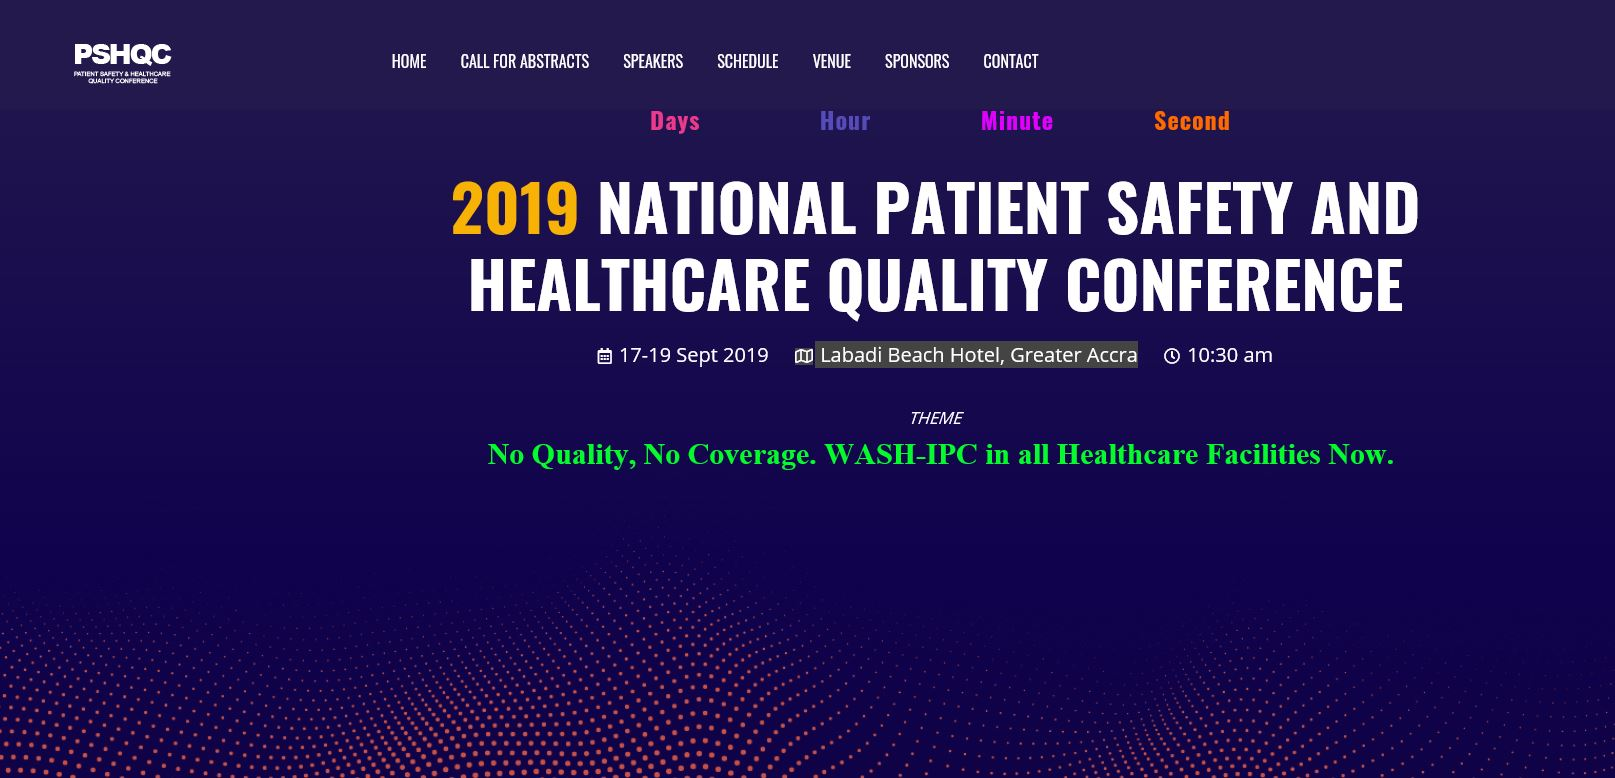 2019 National Patient Safety and Healthcare Quality Conference